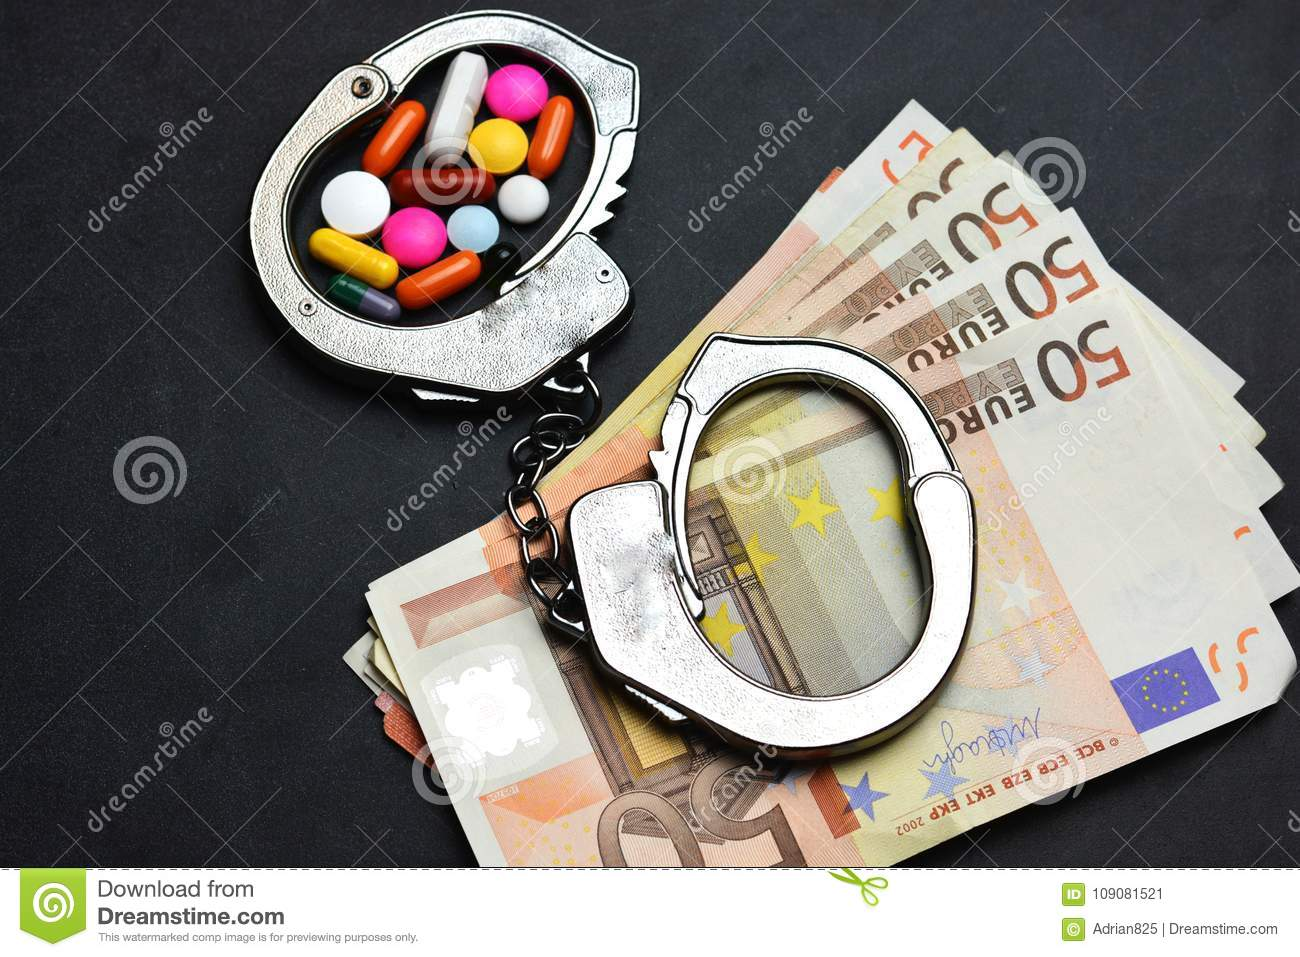 Drugs trafficking is illegal, with pills or narcotics in handcuffs on euro banknotes